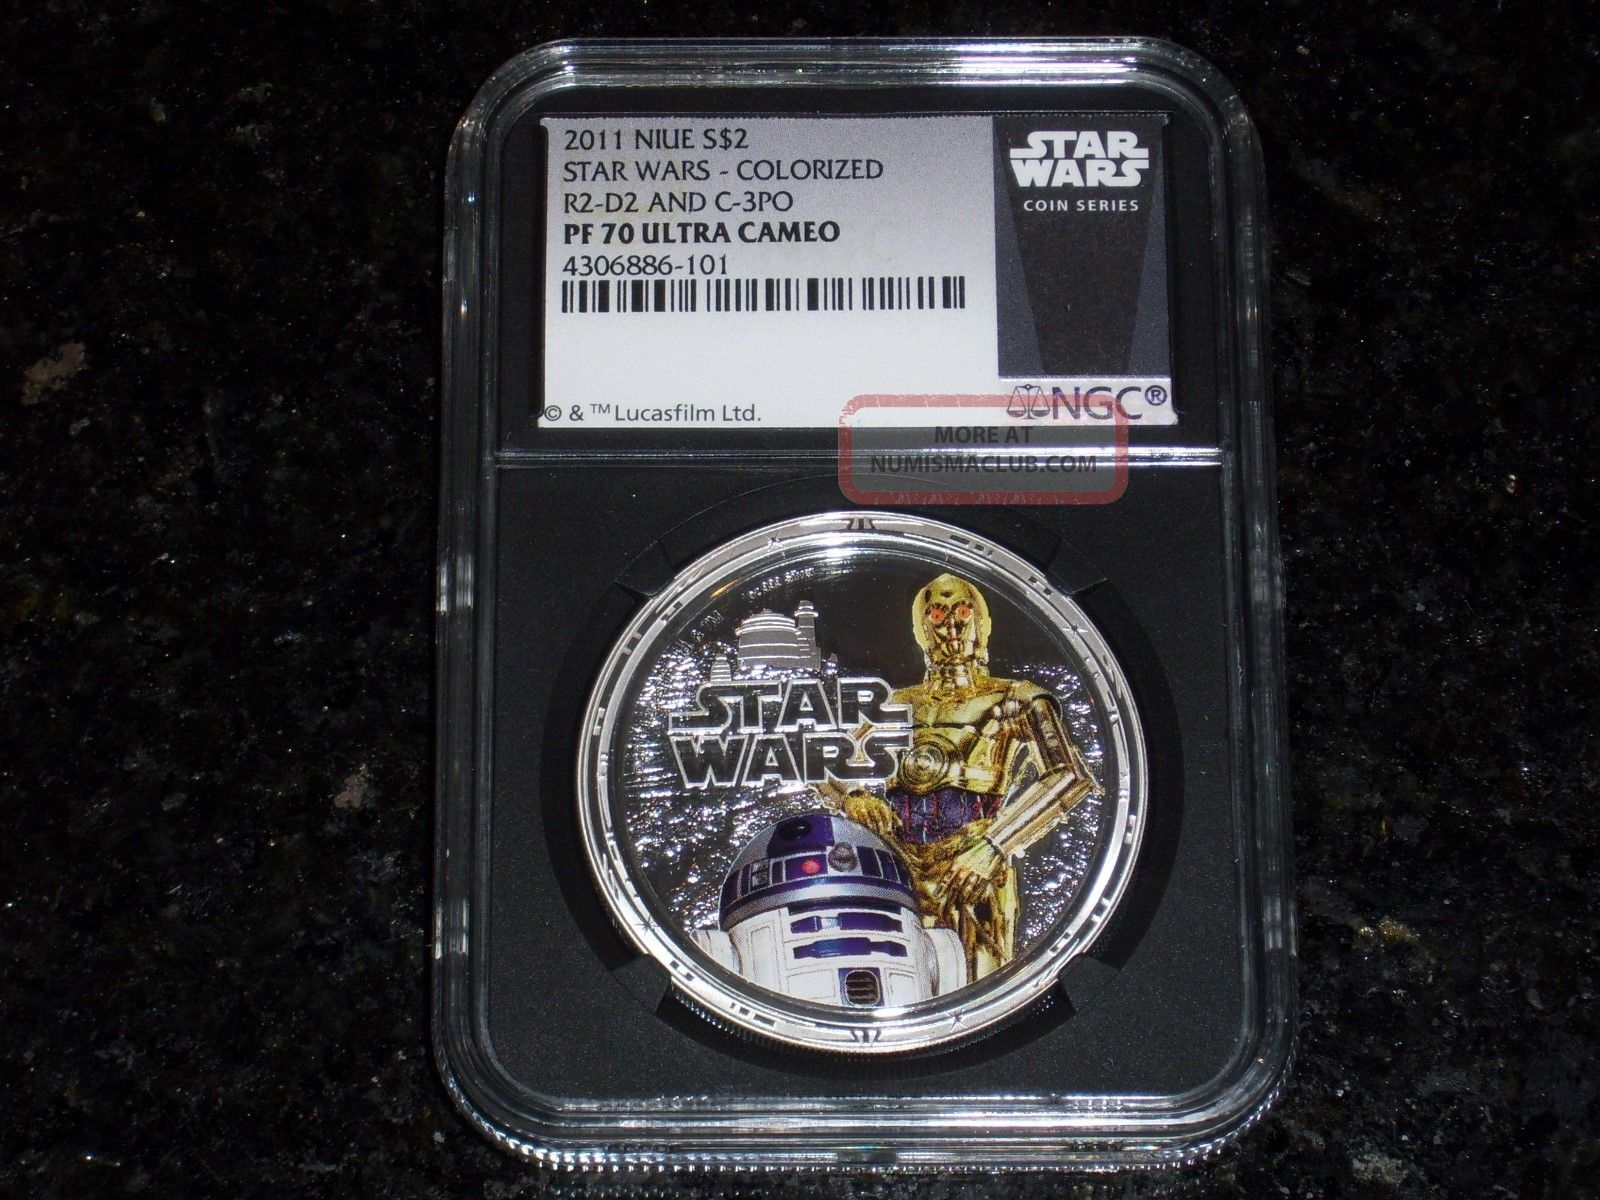 2011 $2 Niue Star Wars 1 Oz.  Silver R2 - D2 & C - 3po Ngc Pf70 Ultra Cameo - Blk Core Commemorative photo